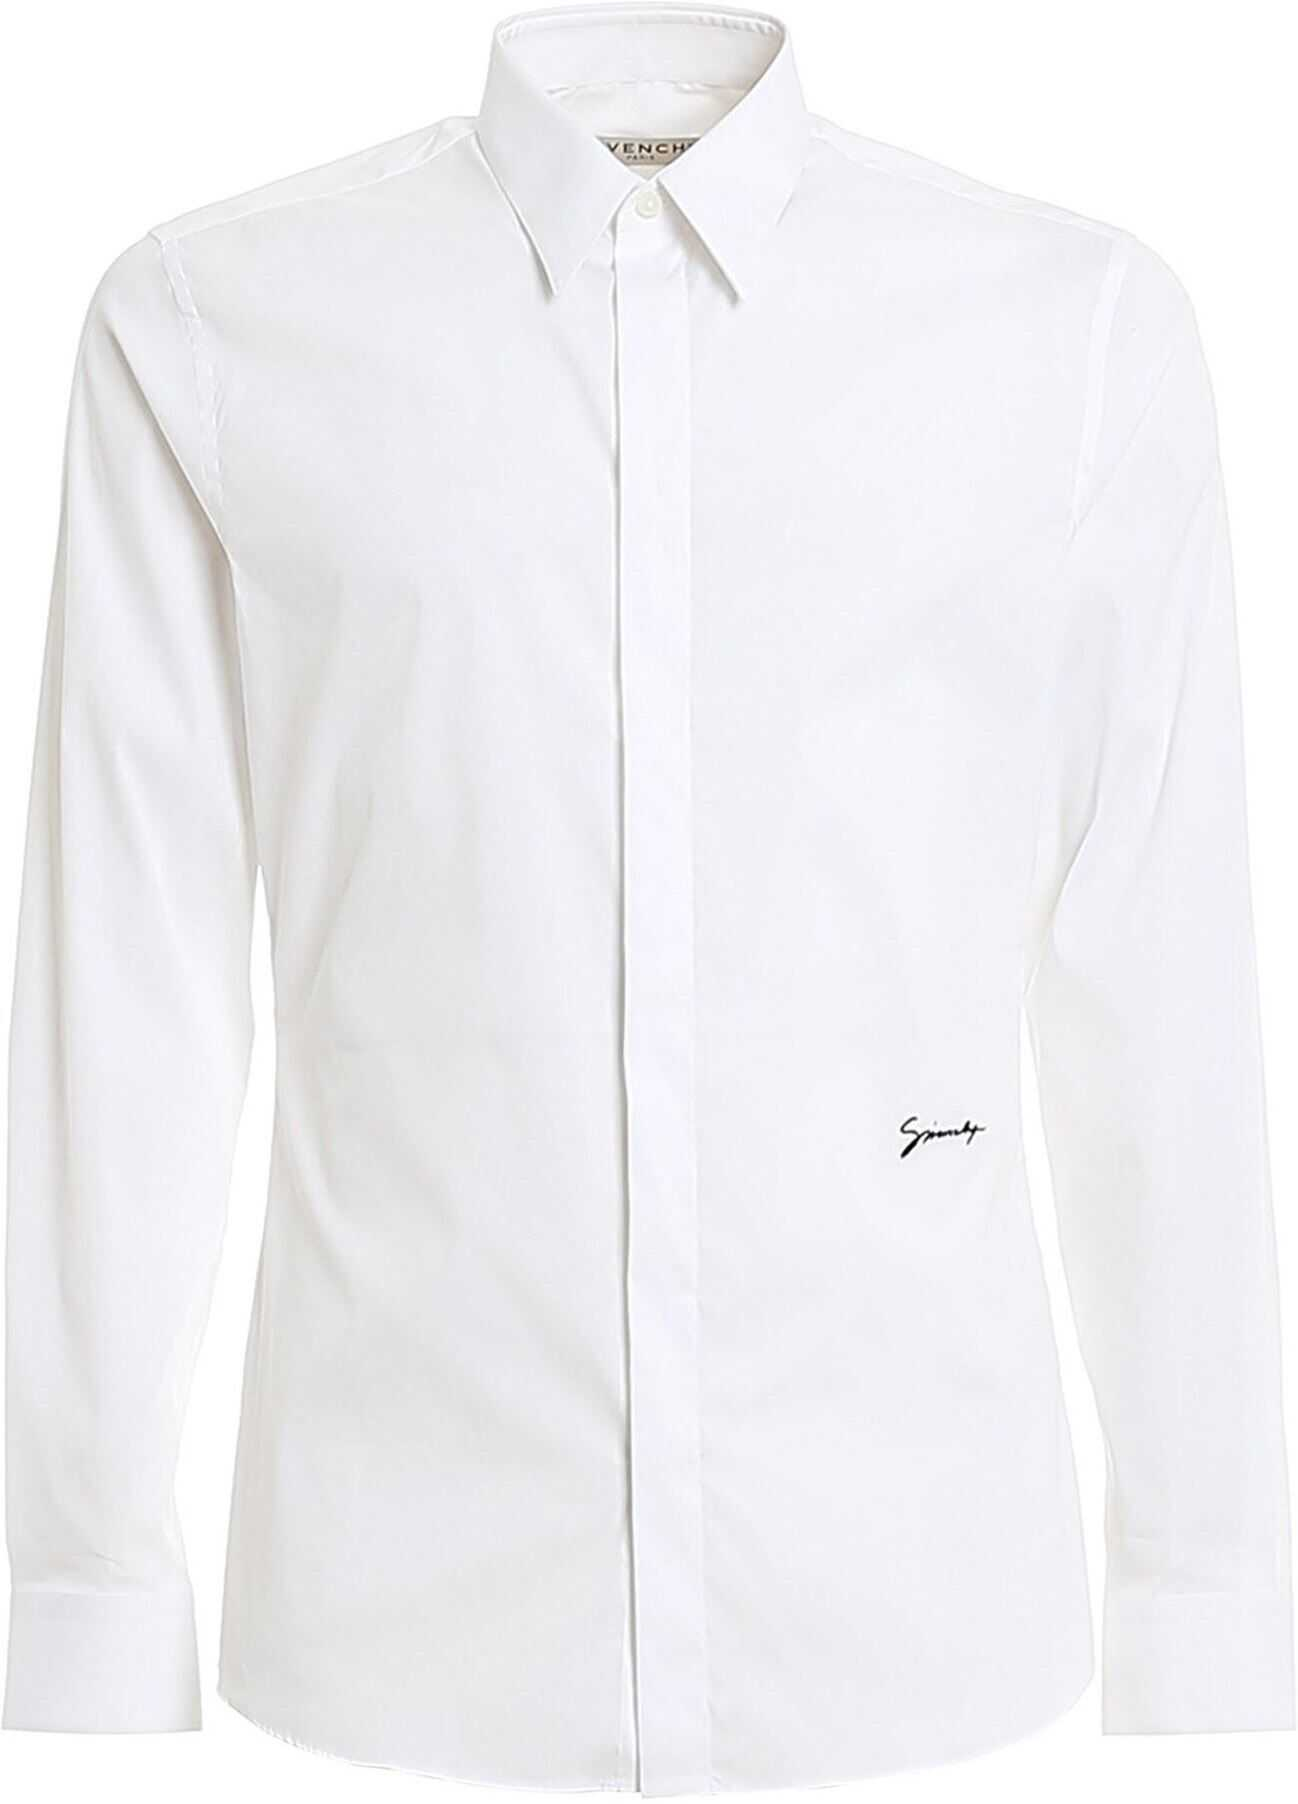 Givenchy White Cotton Blend Shirt With Logo Embroidery White imagine